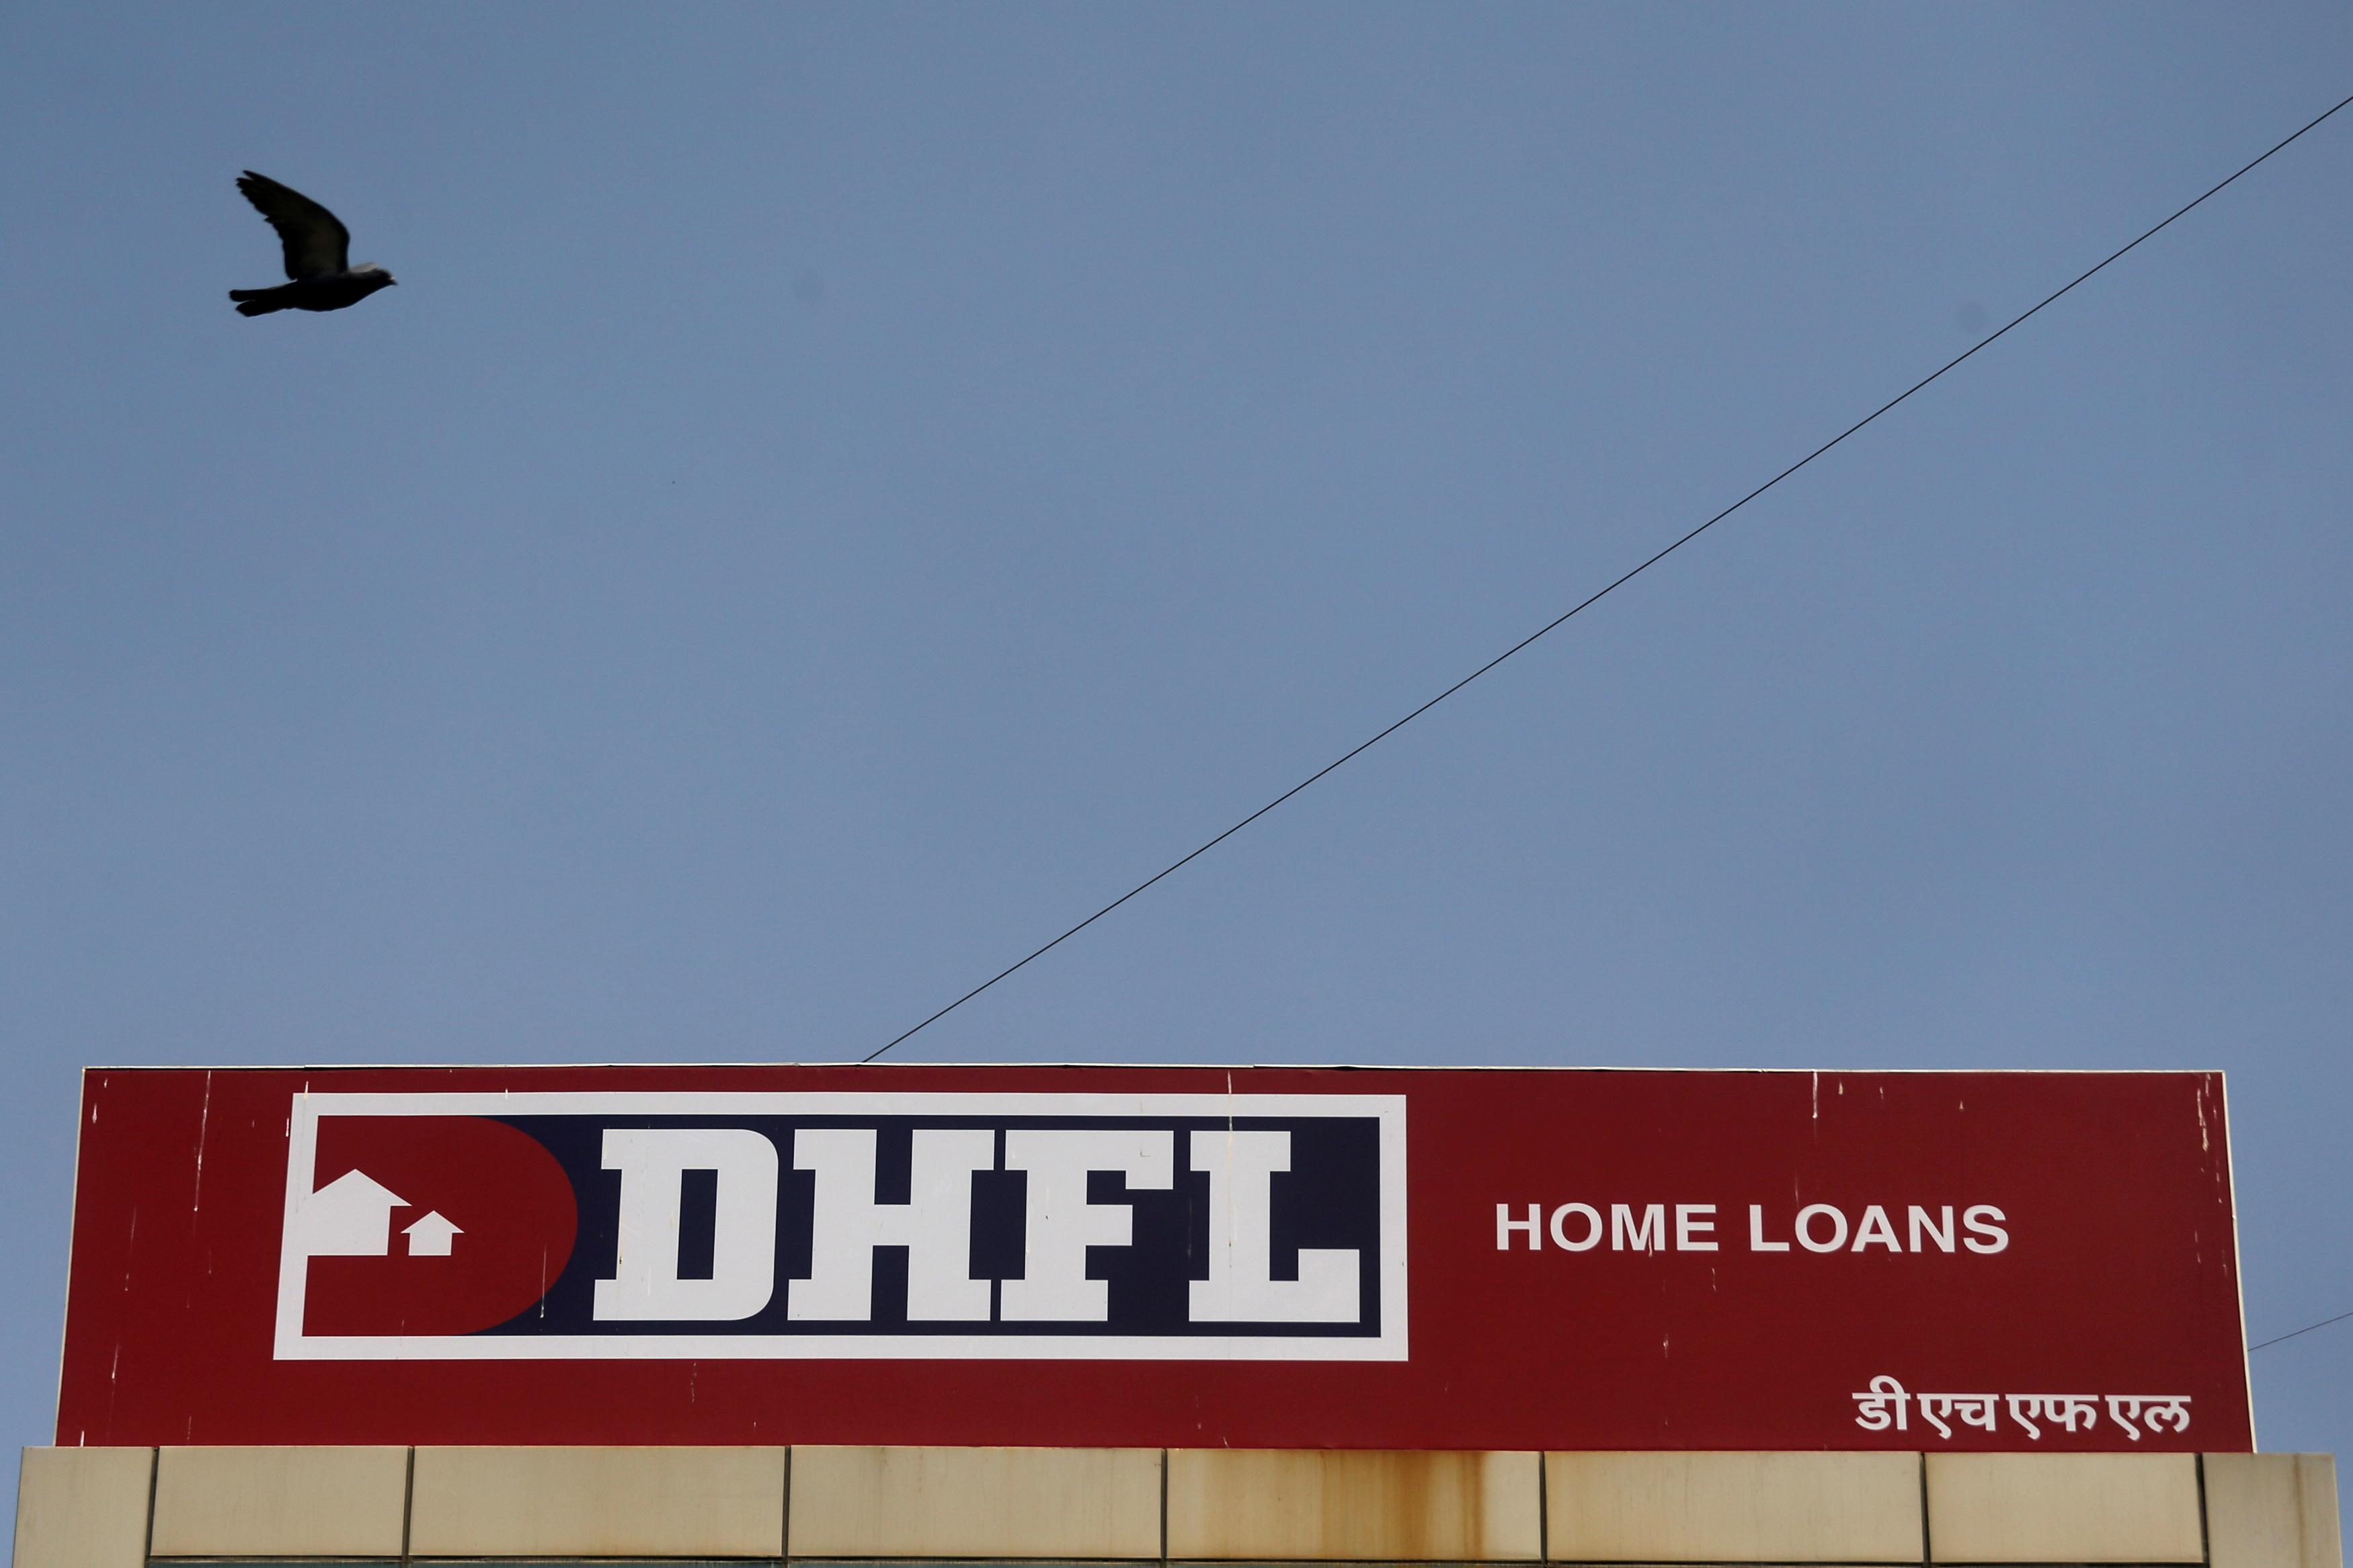 Indian housing lender DHFL warns it may not survive as a going concern